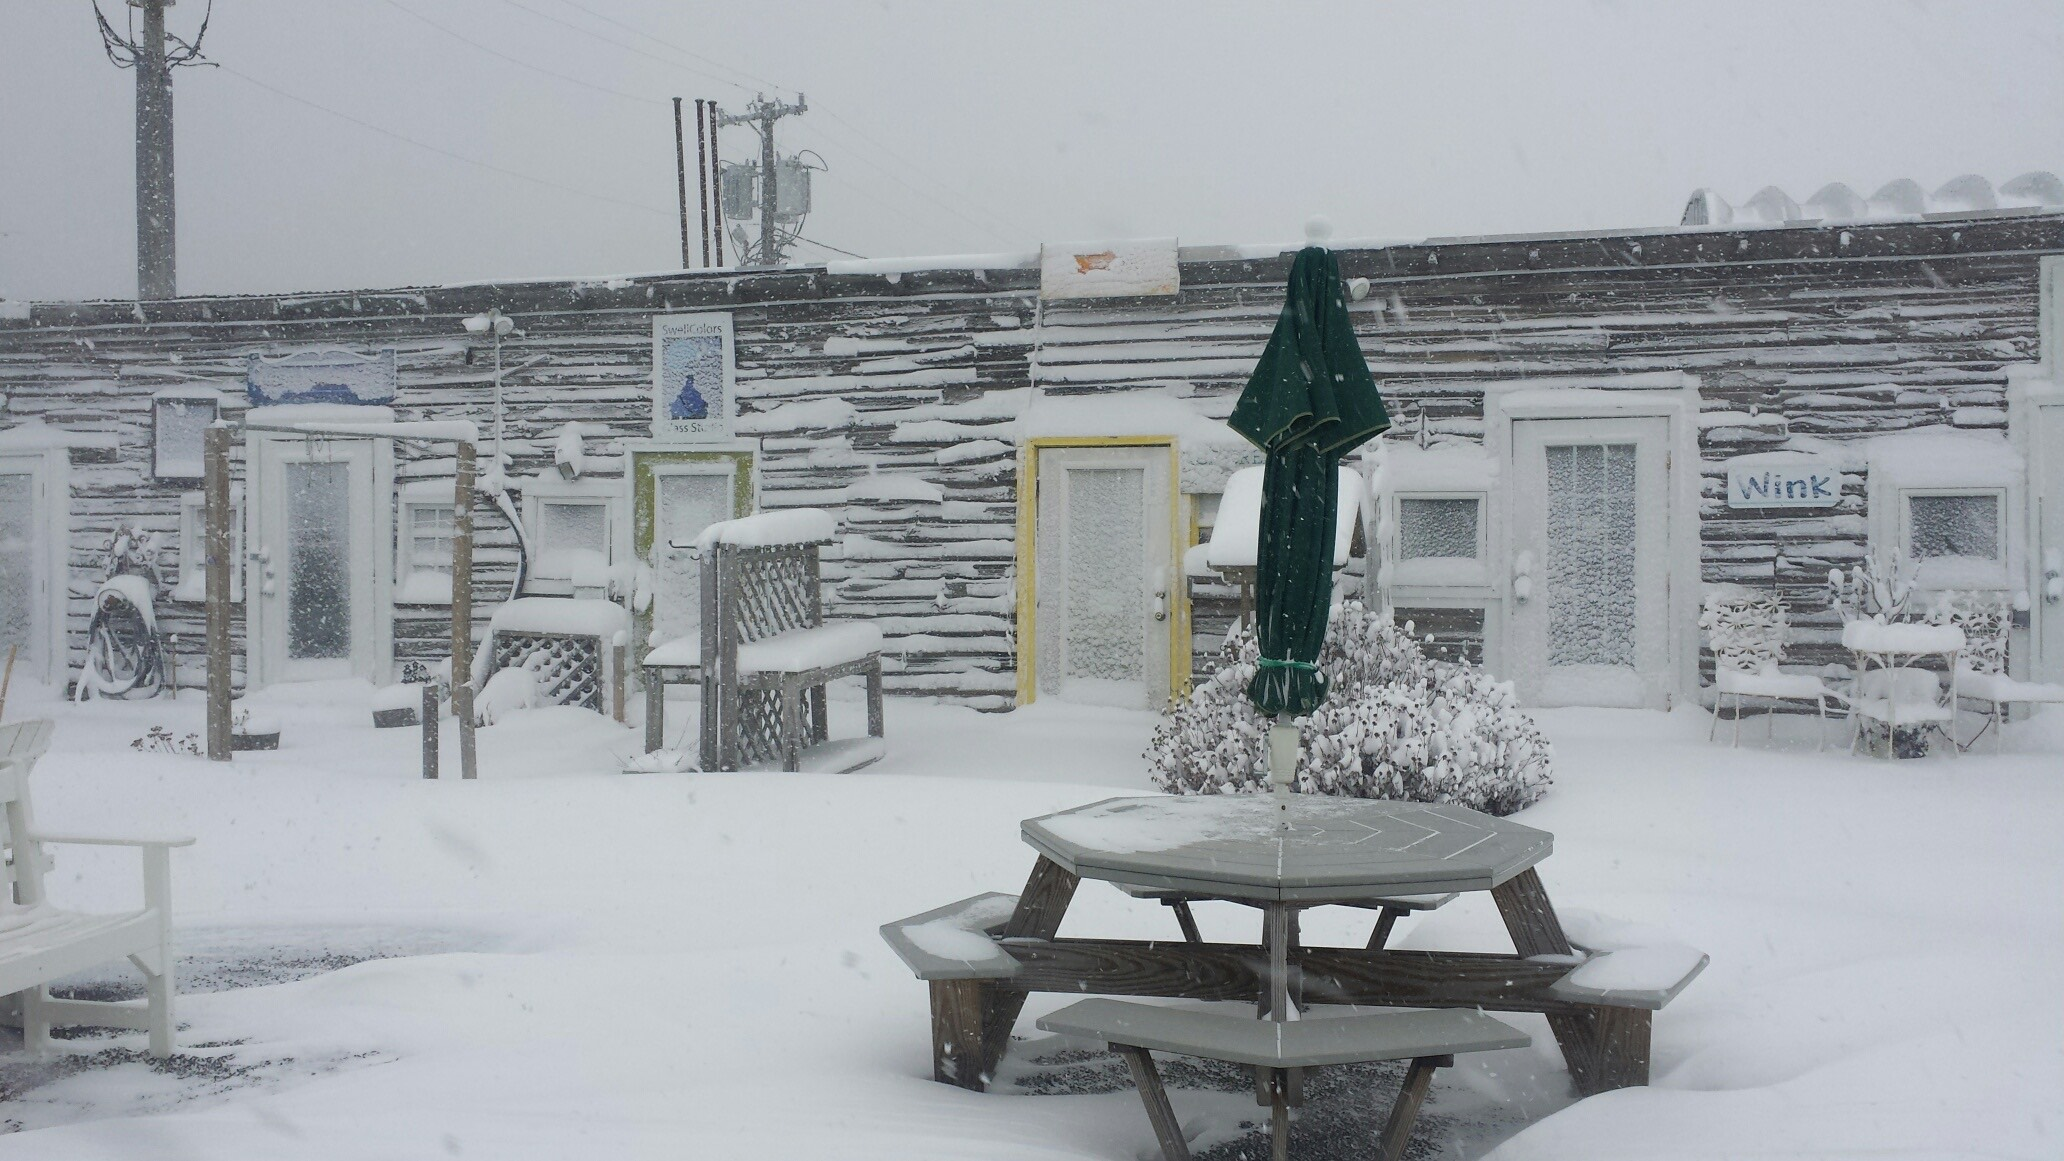 SwellColors North, in Viking Village in Barnegat Light. Makes you really want a cup of hot cocoa, doesn't it?